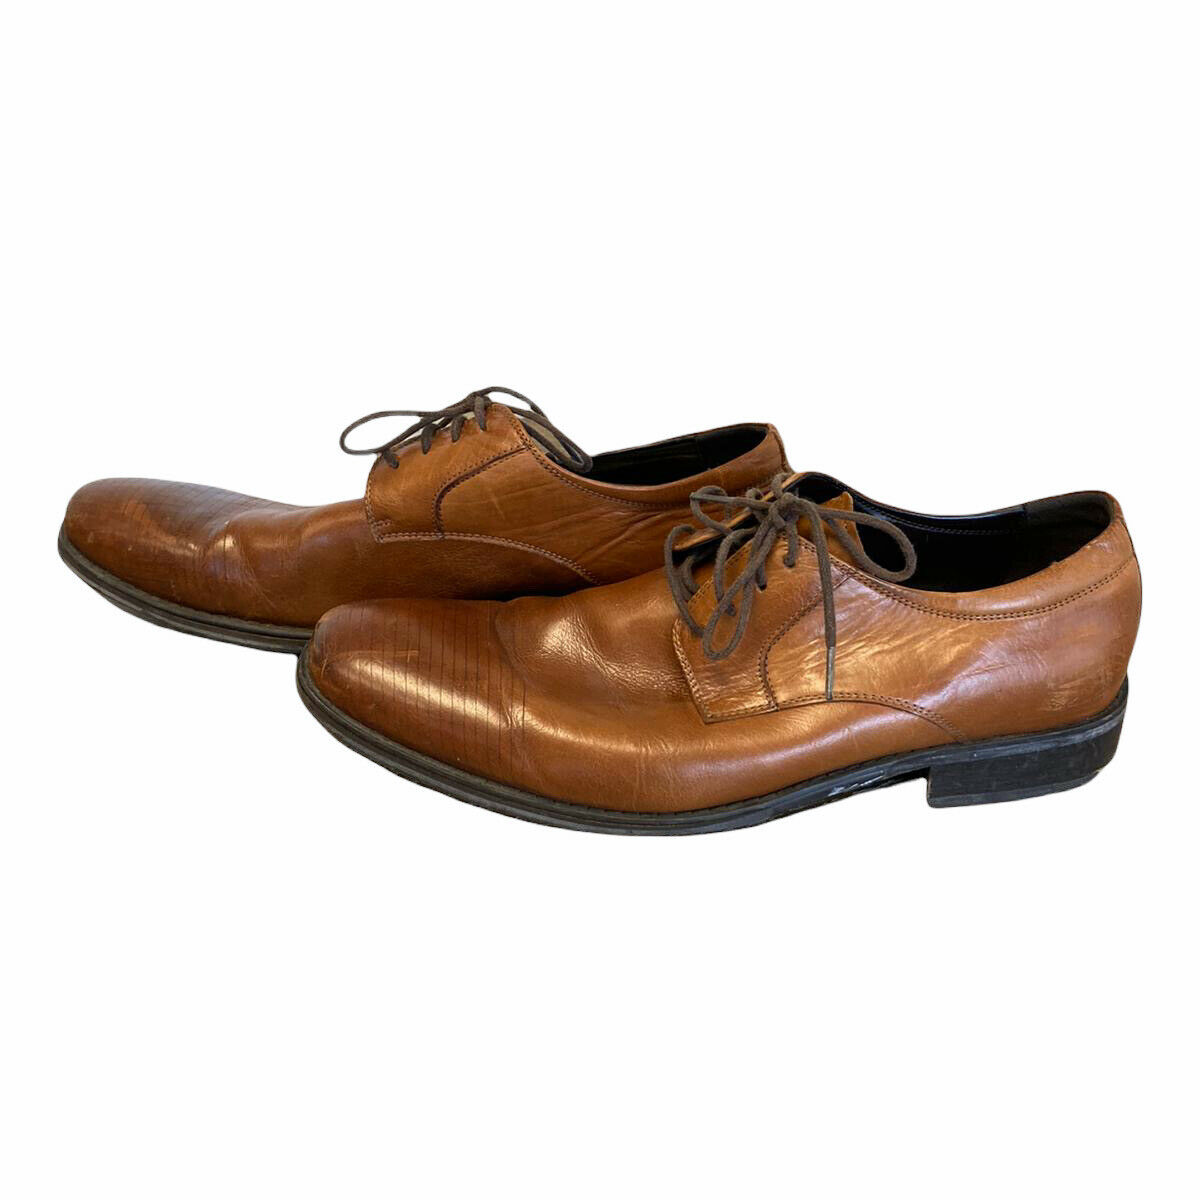 Kenneth Cole Mens Fresh Air Brown Leather Lace Up Oxford Dress Shoes Size 11 M